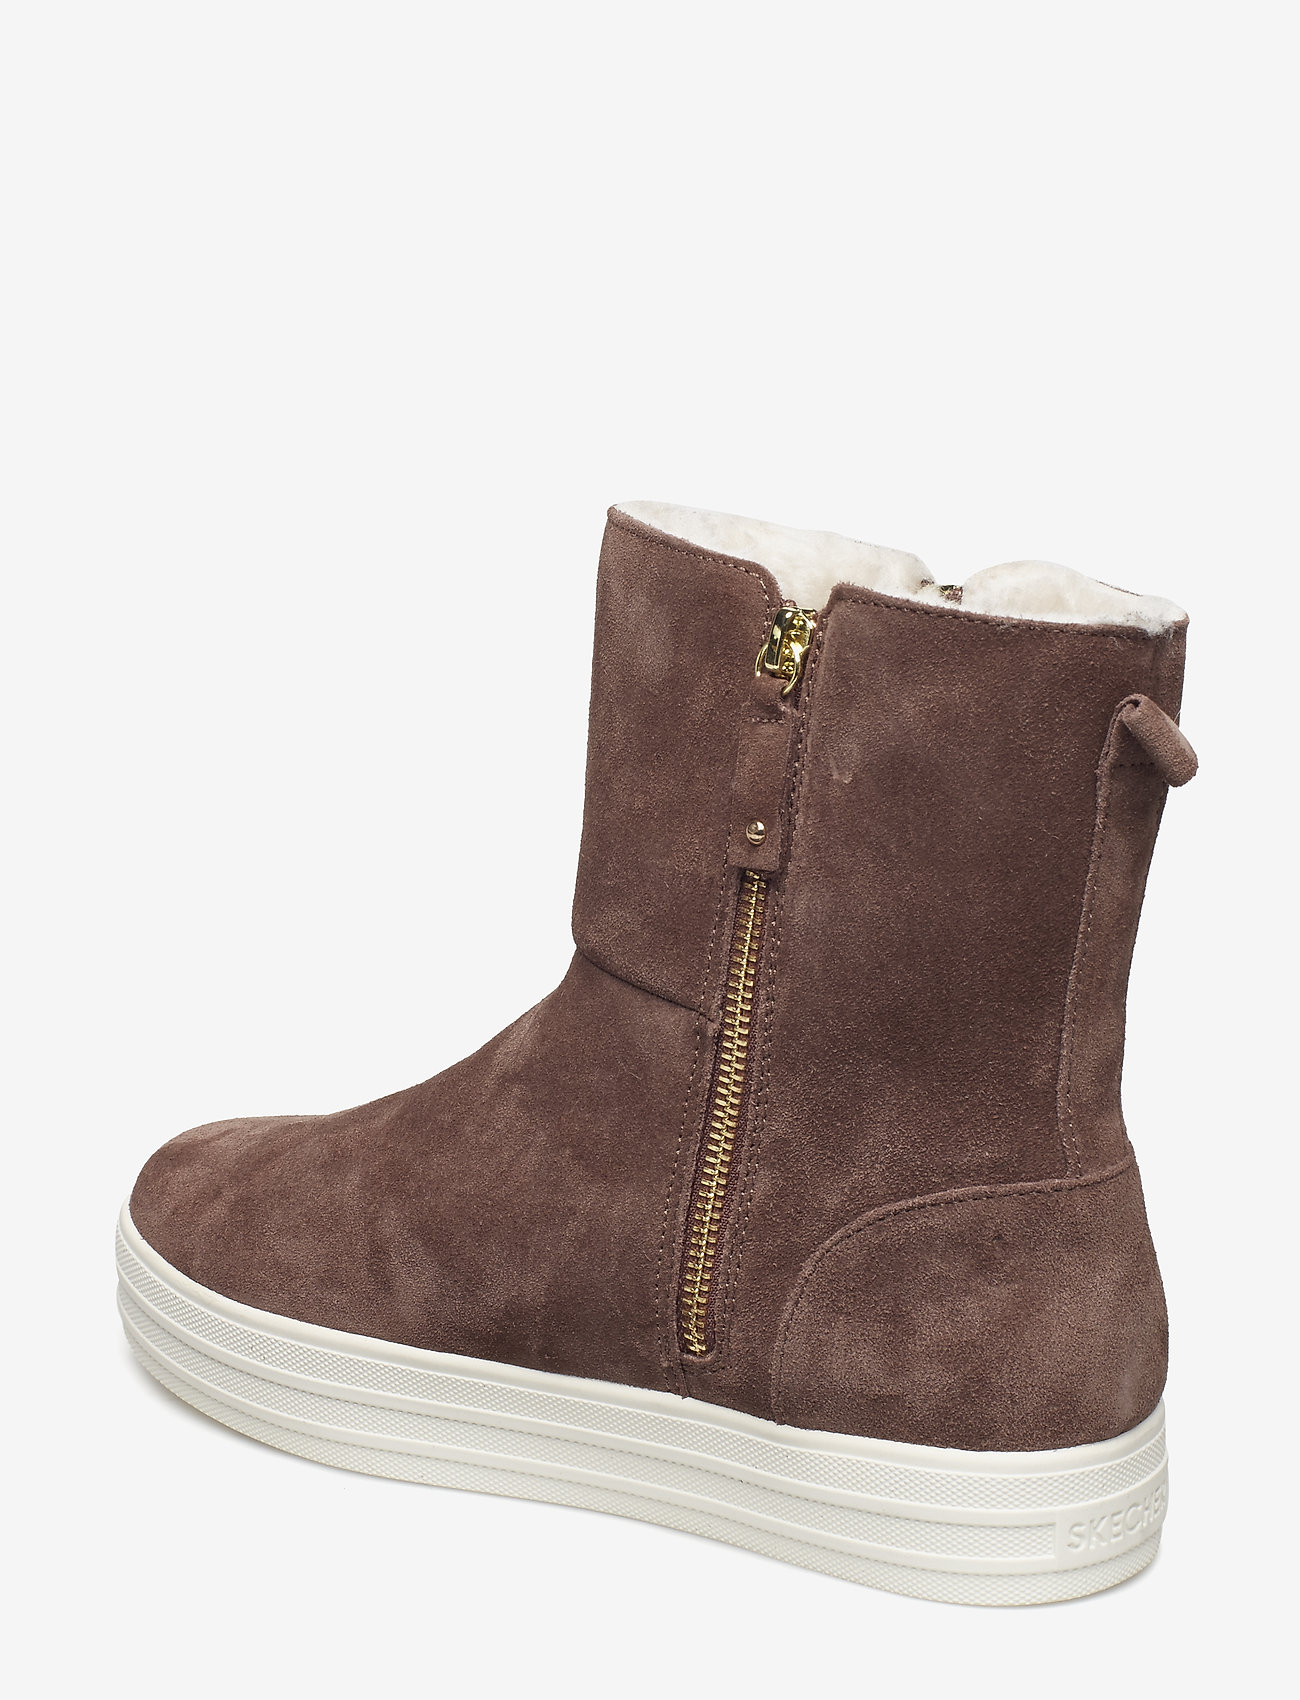 Womens Originals: Double Up - Fall In Line (Dktp Dark Taupe) - Skechers